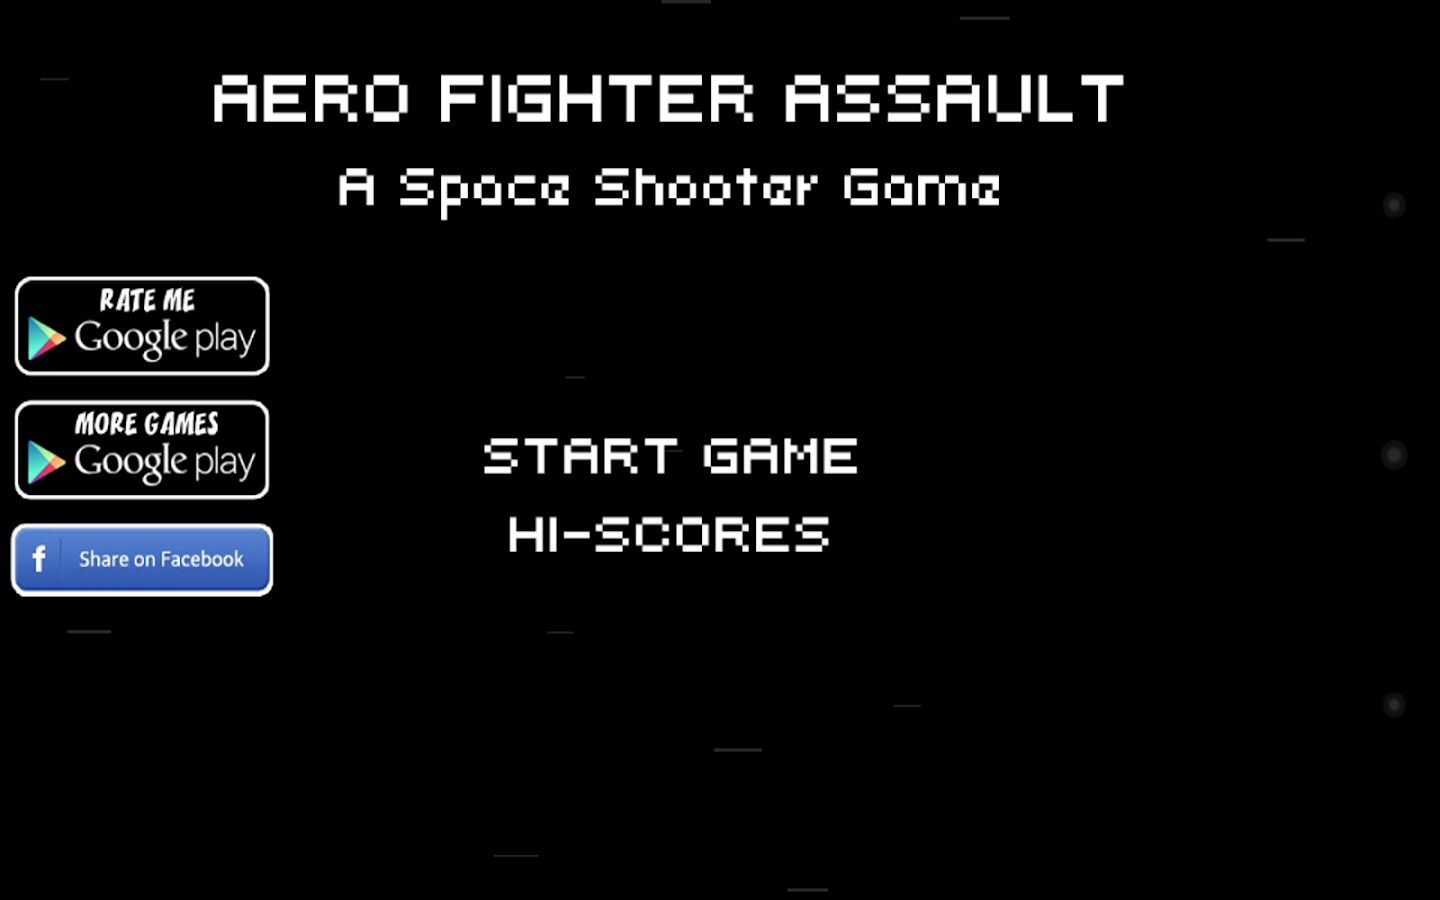 Aero-Fighter-Assault 16